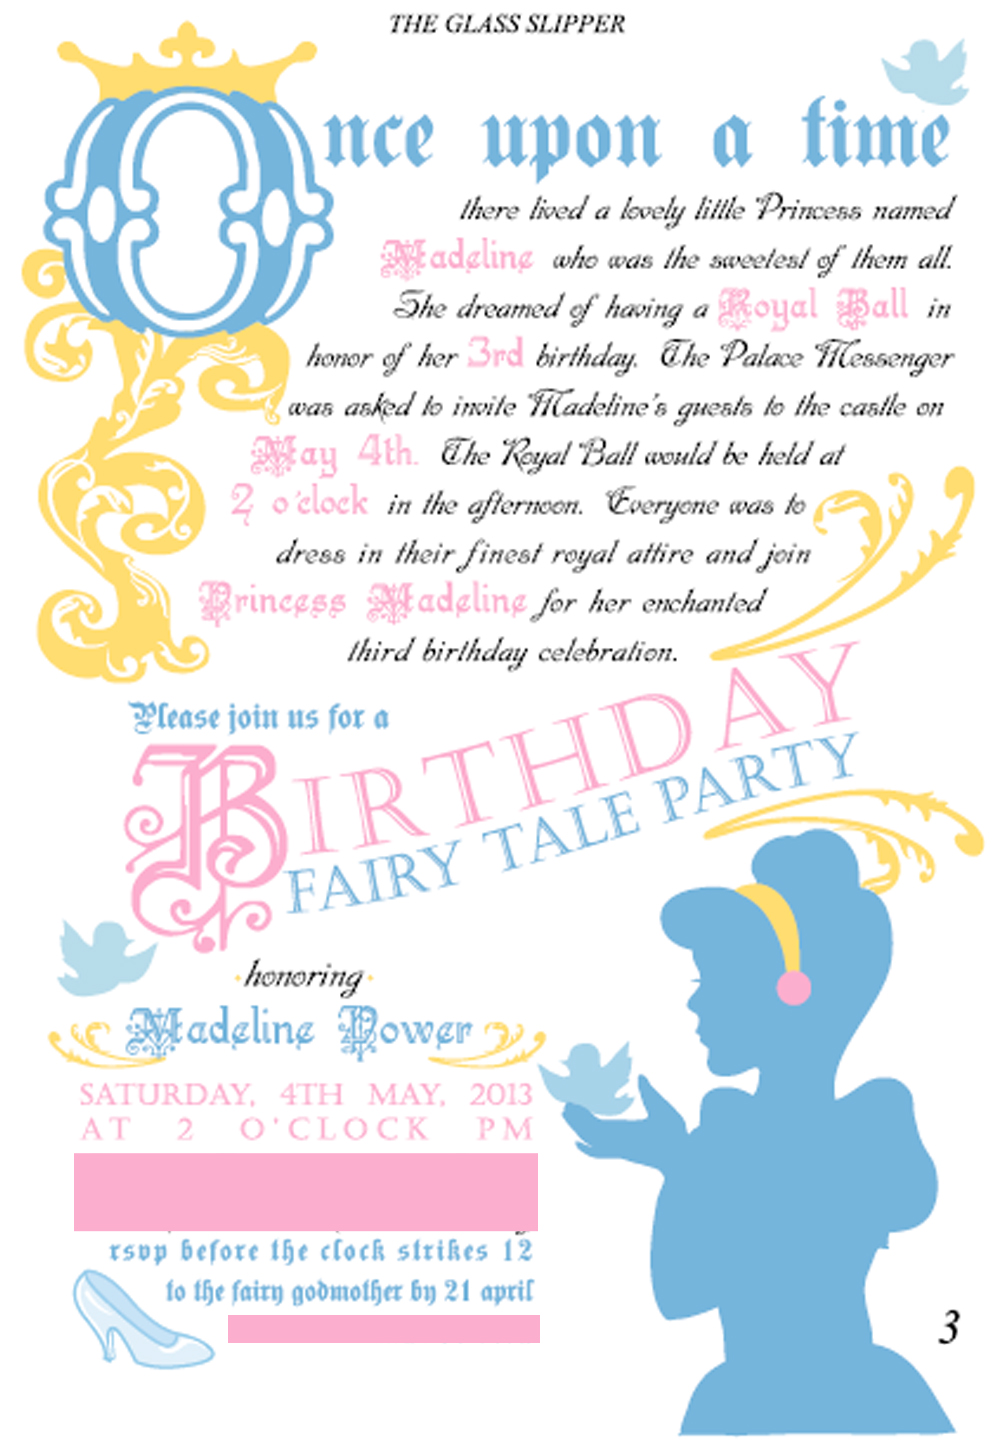 Little housewife cinderella birthday party sneak peek cinderella birthday party sneak peek stopboris Image collections